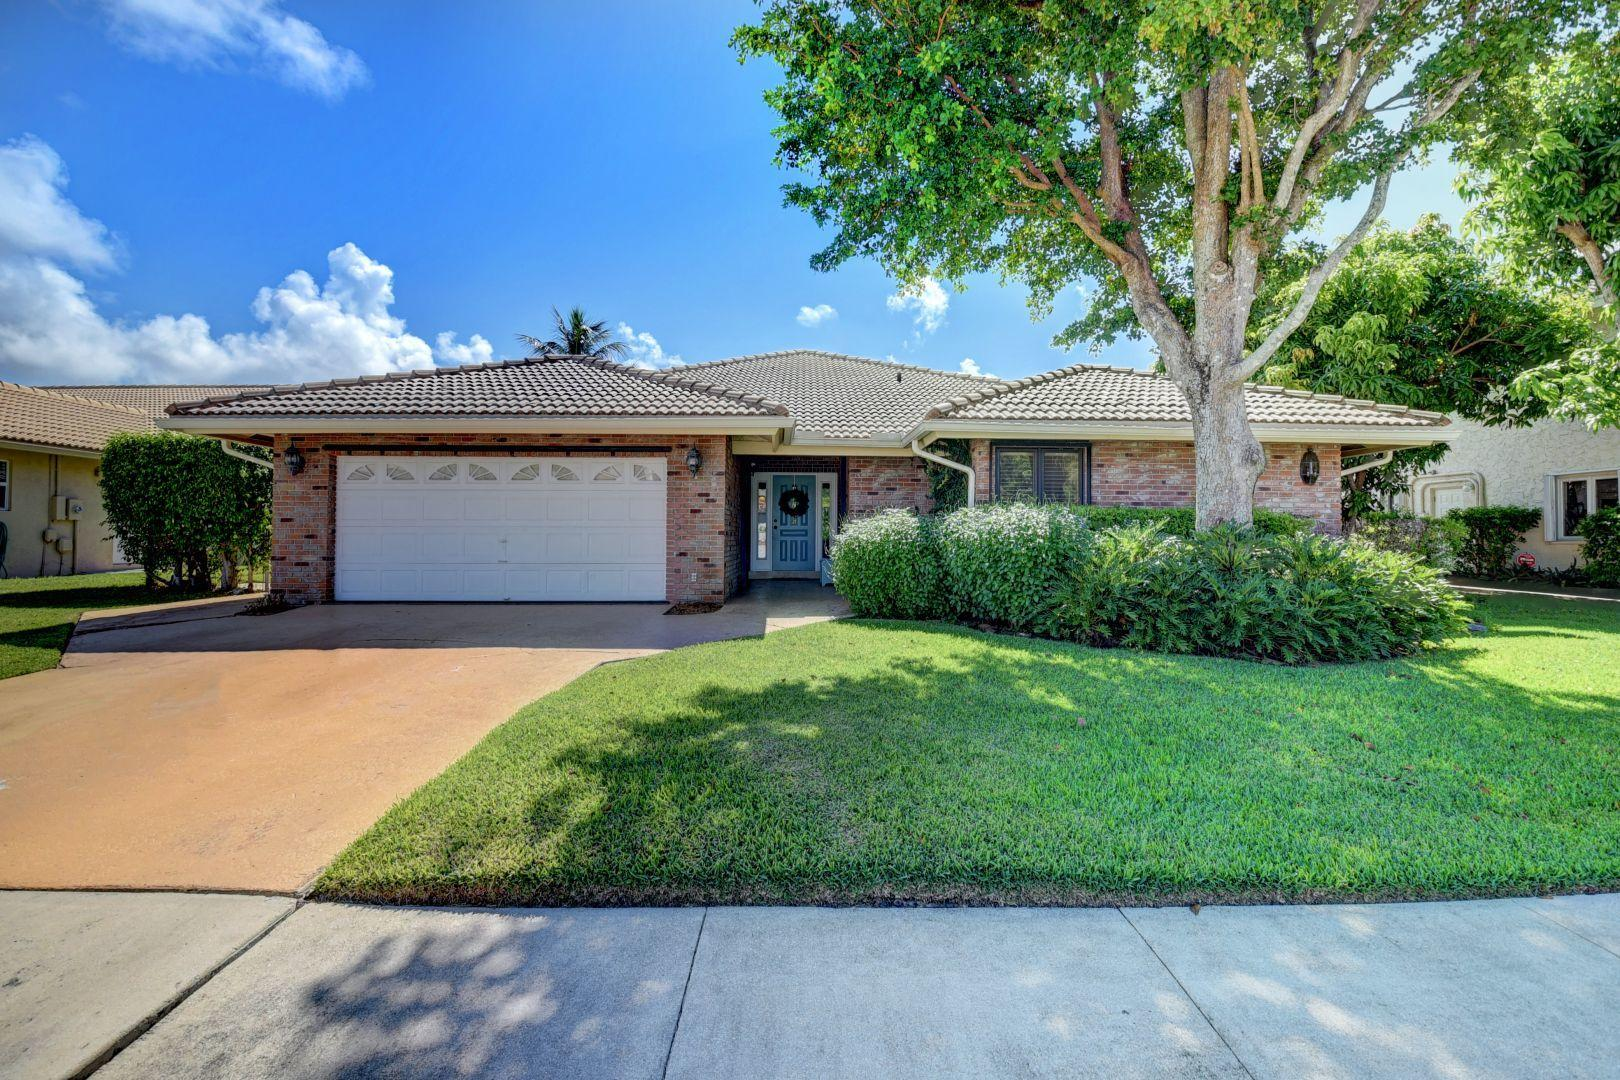 Home for sale in ESTOVILLE - Spanish River Gardens Boca Raton Florida